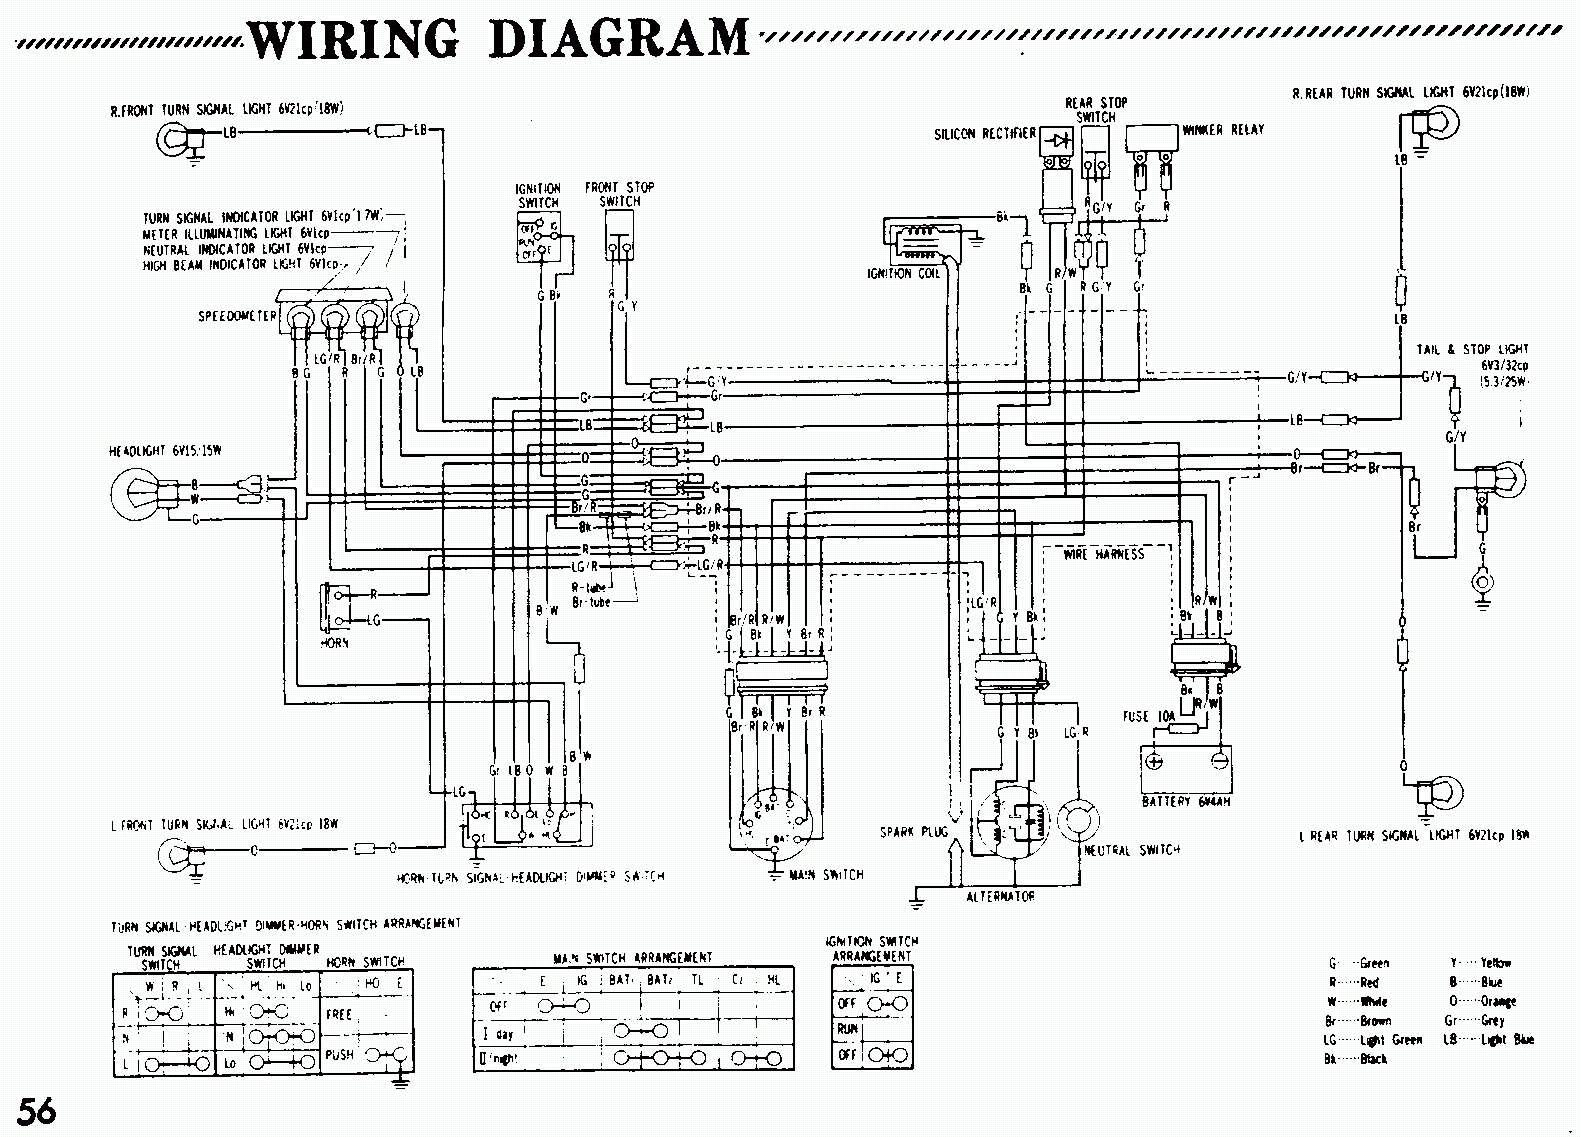 Trail 70 12v Wiring Diagram List Of Schematic Circuit Ford Contour 2 0 Engine Tbolt Usa Tech Database Llc Rh Tboltusa Com